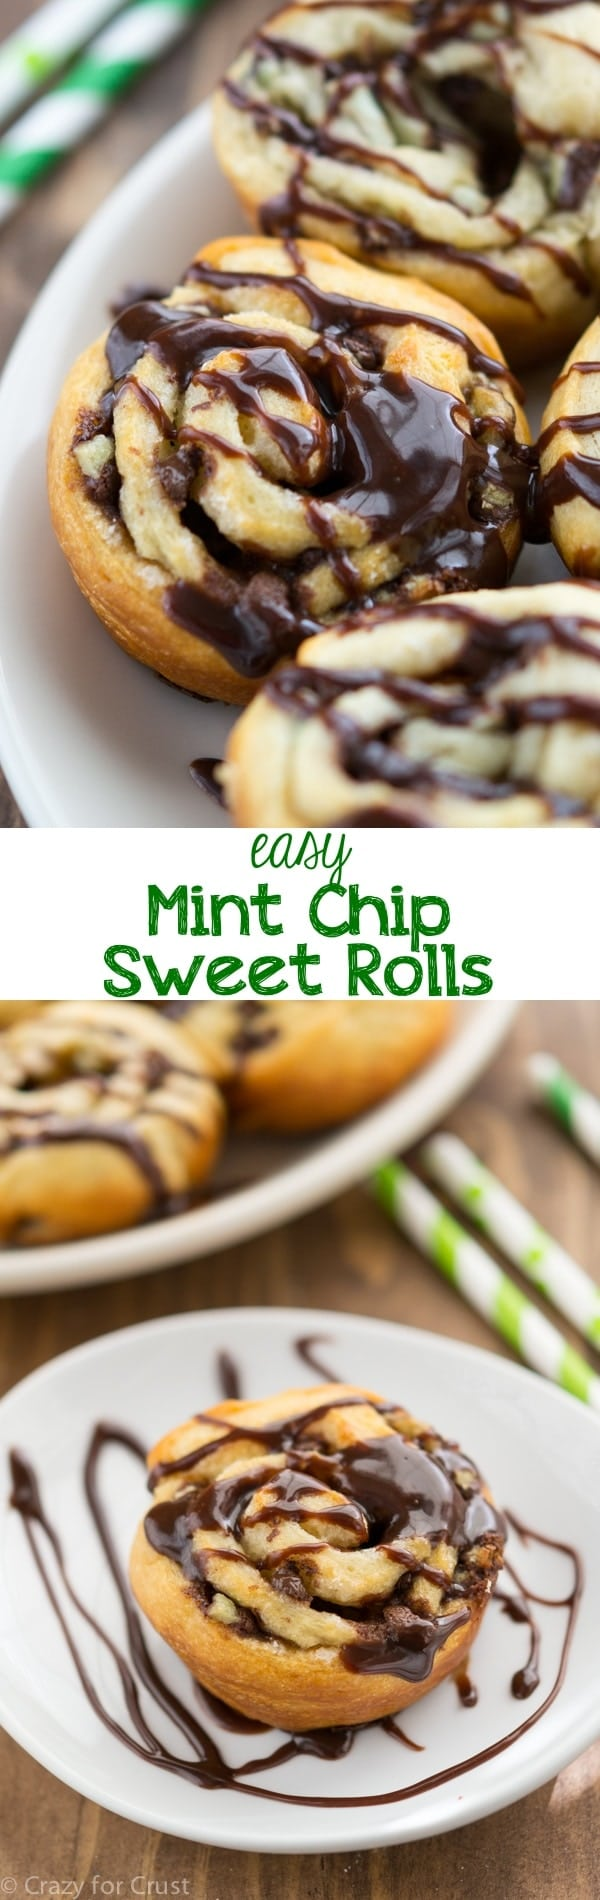 Easy Mint Chip Sweet Rolls - just a few ingredients and less than 20 minutes to have mint chip sweet rolls for breakfast!